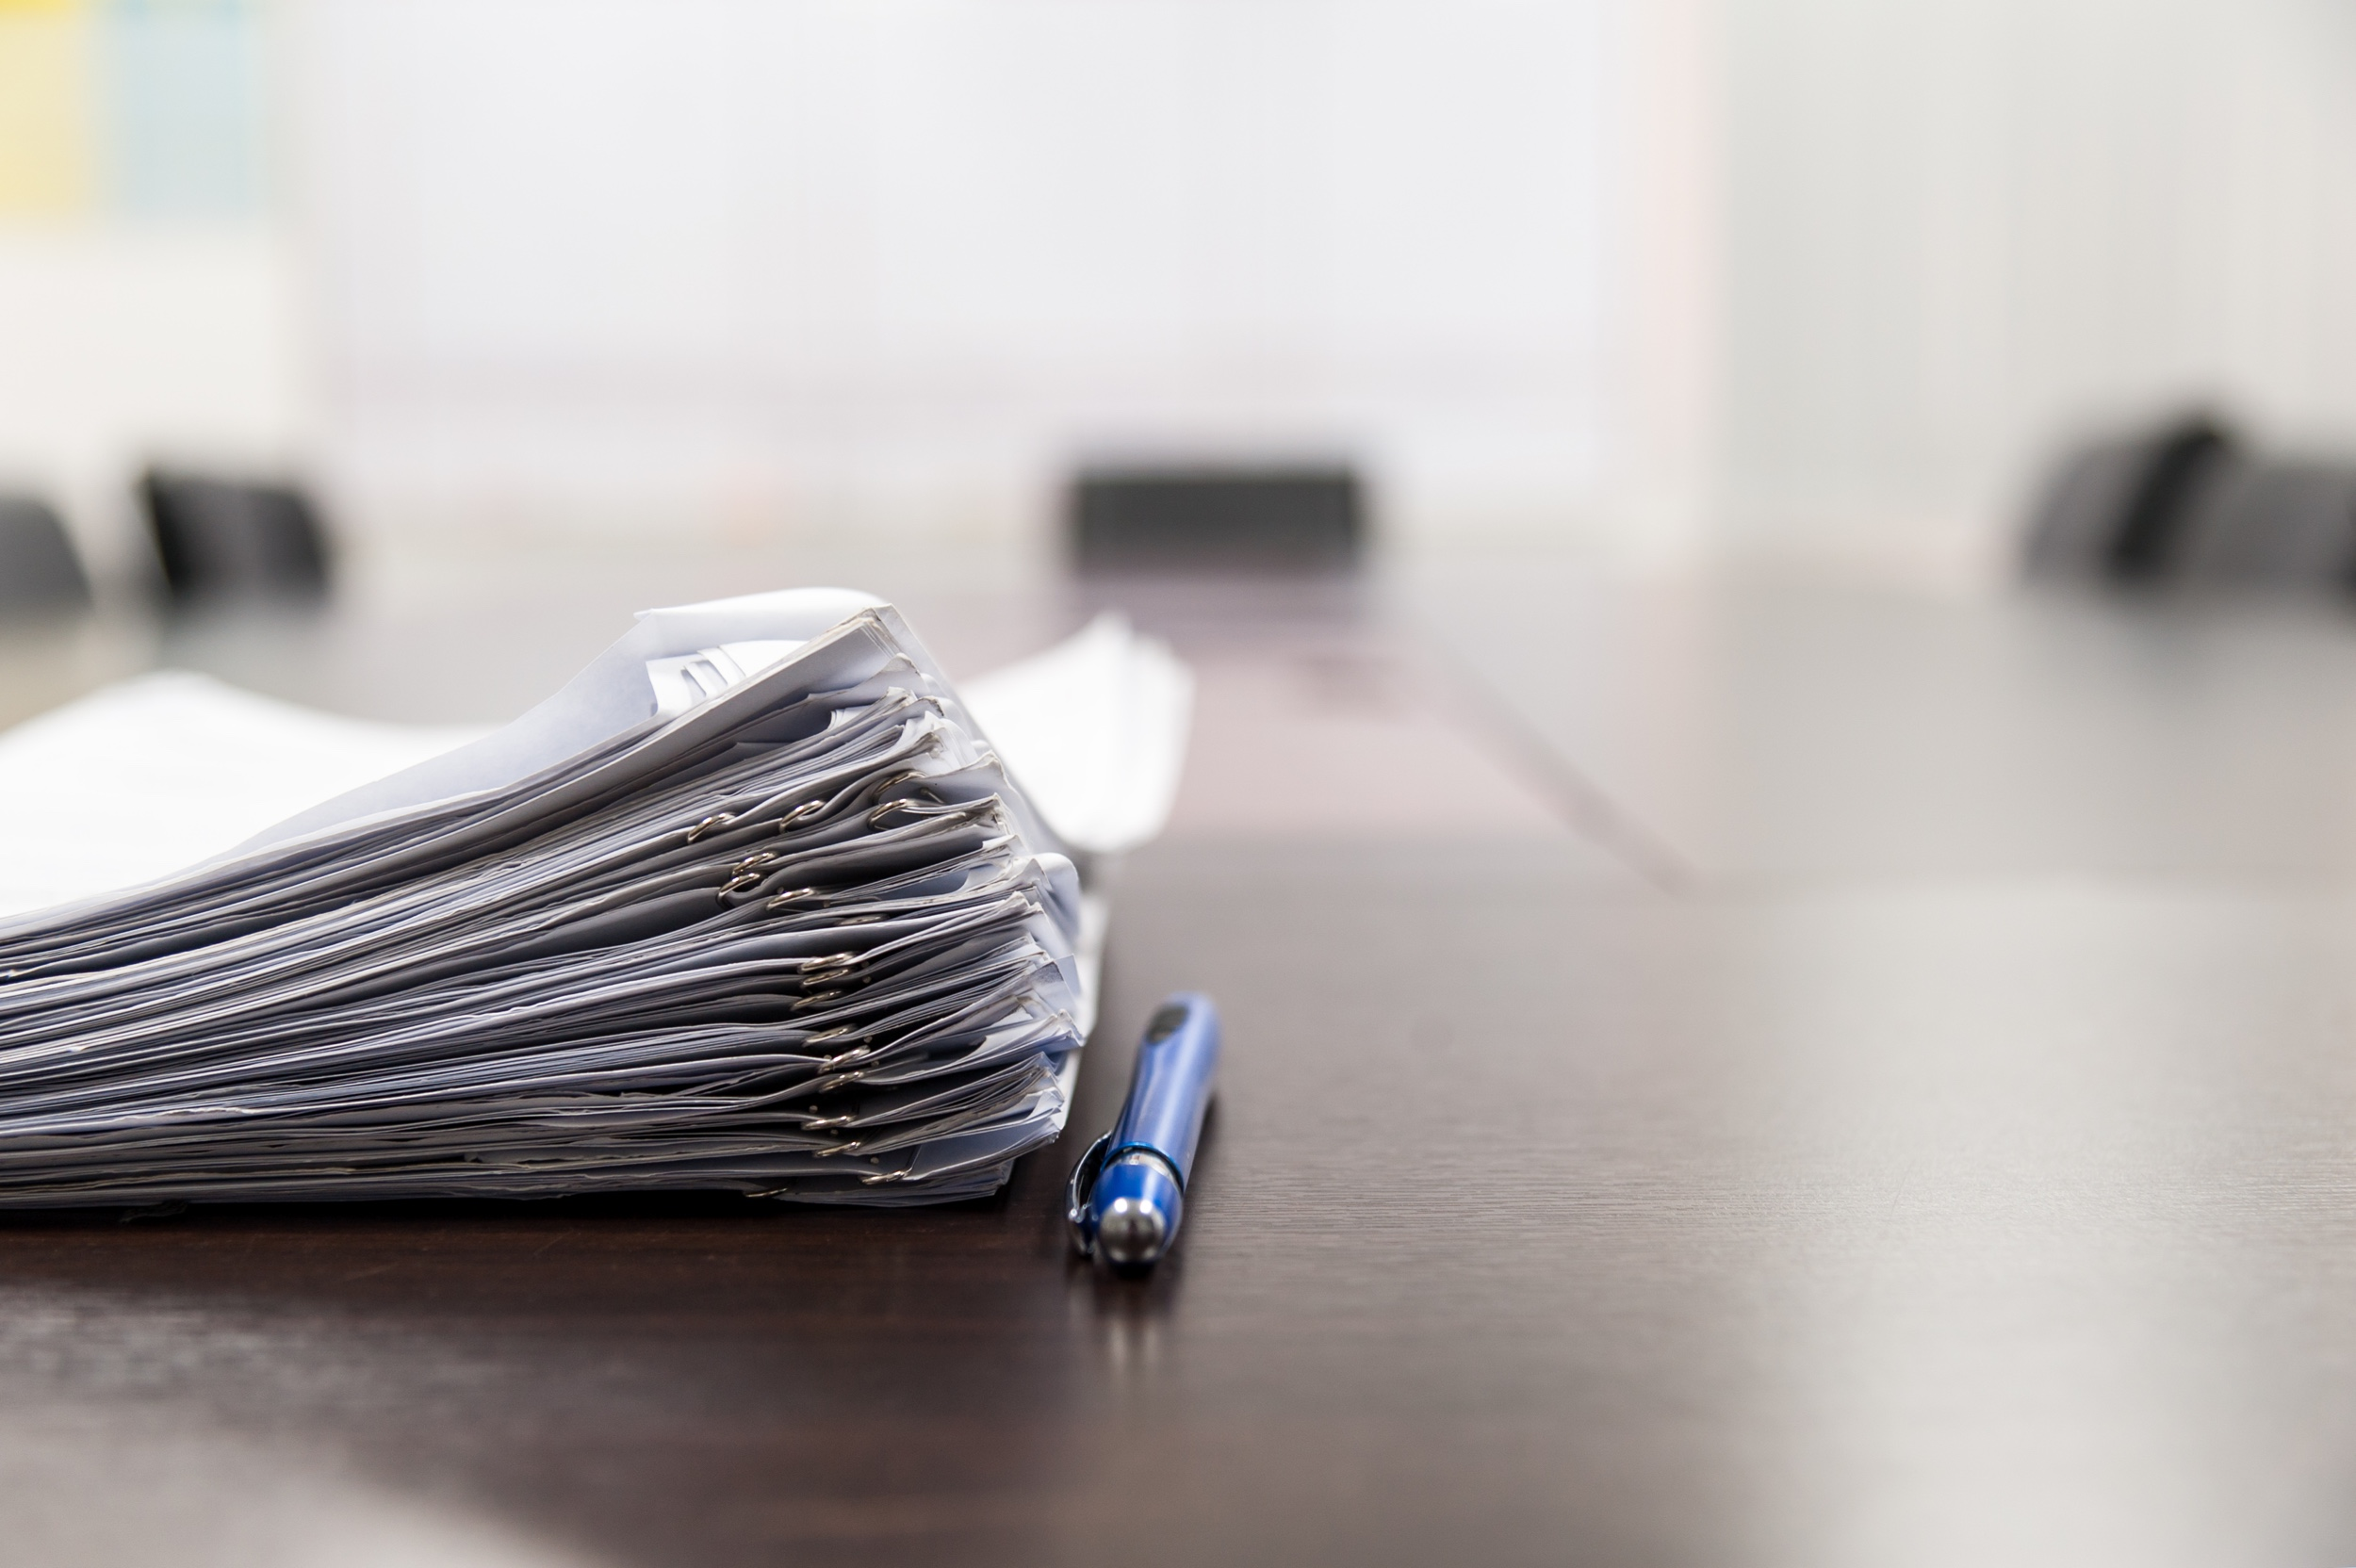 Pile of documents and blue pen on the meeting table with blurred background. Conceptual job interview.; Shutterstock ID 608600555; PO: Mariela; Job: StreetEasy Blog